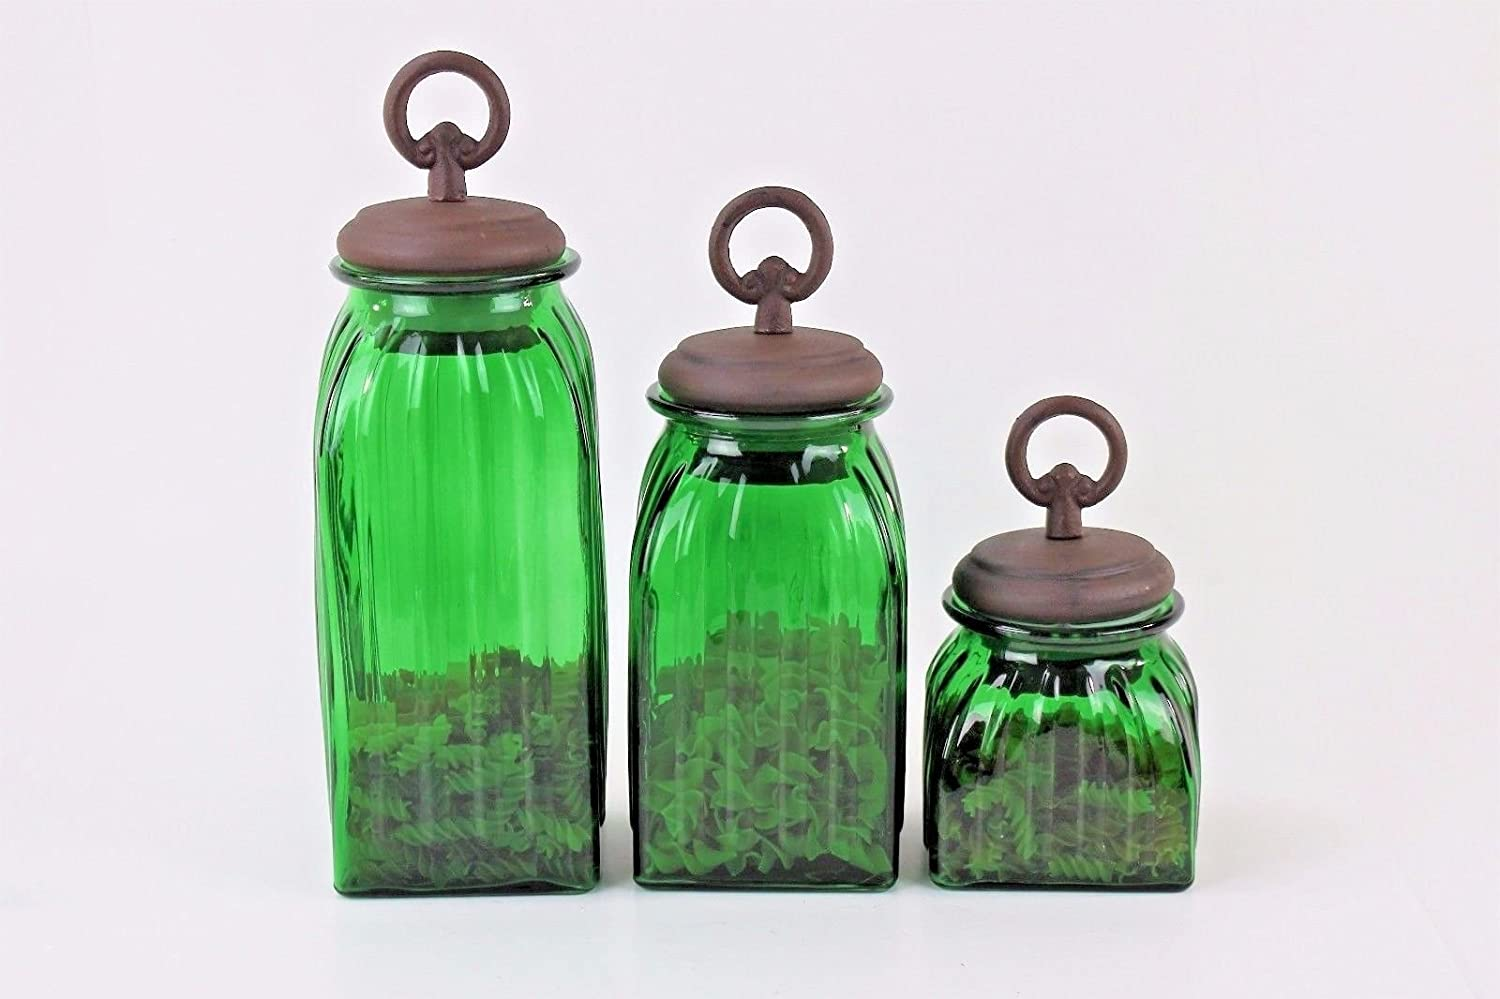 GREEN 3 PC. GLASS CANISTERS SET (RING, COPPER) FREE SALT & PEPPER